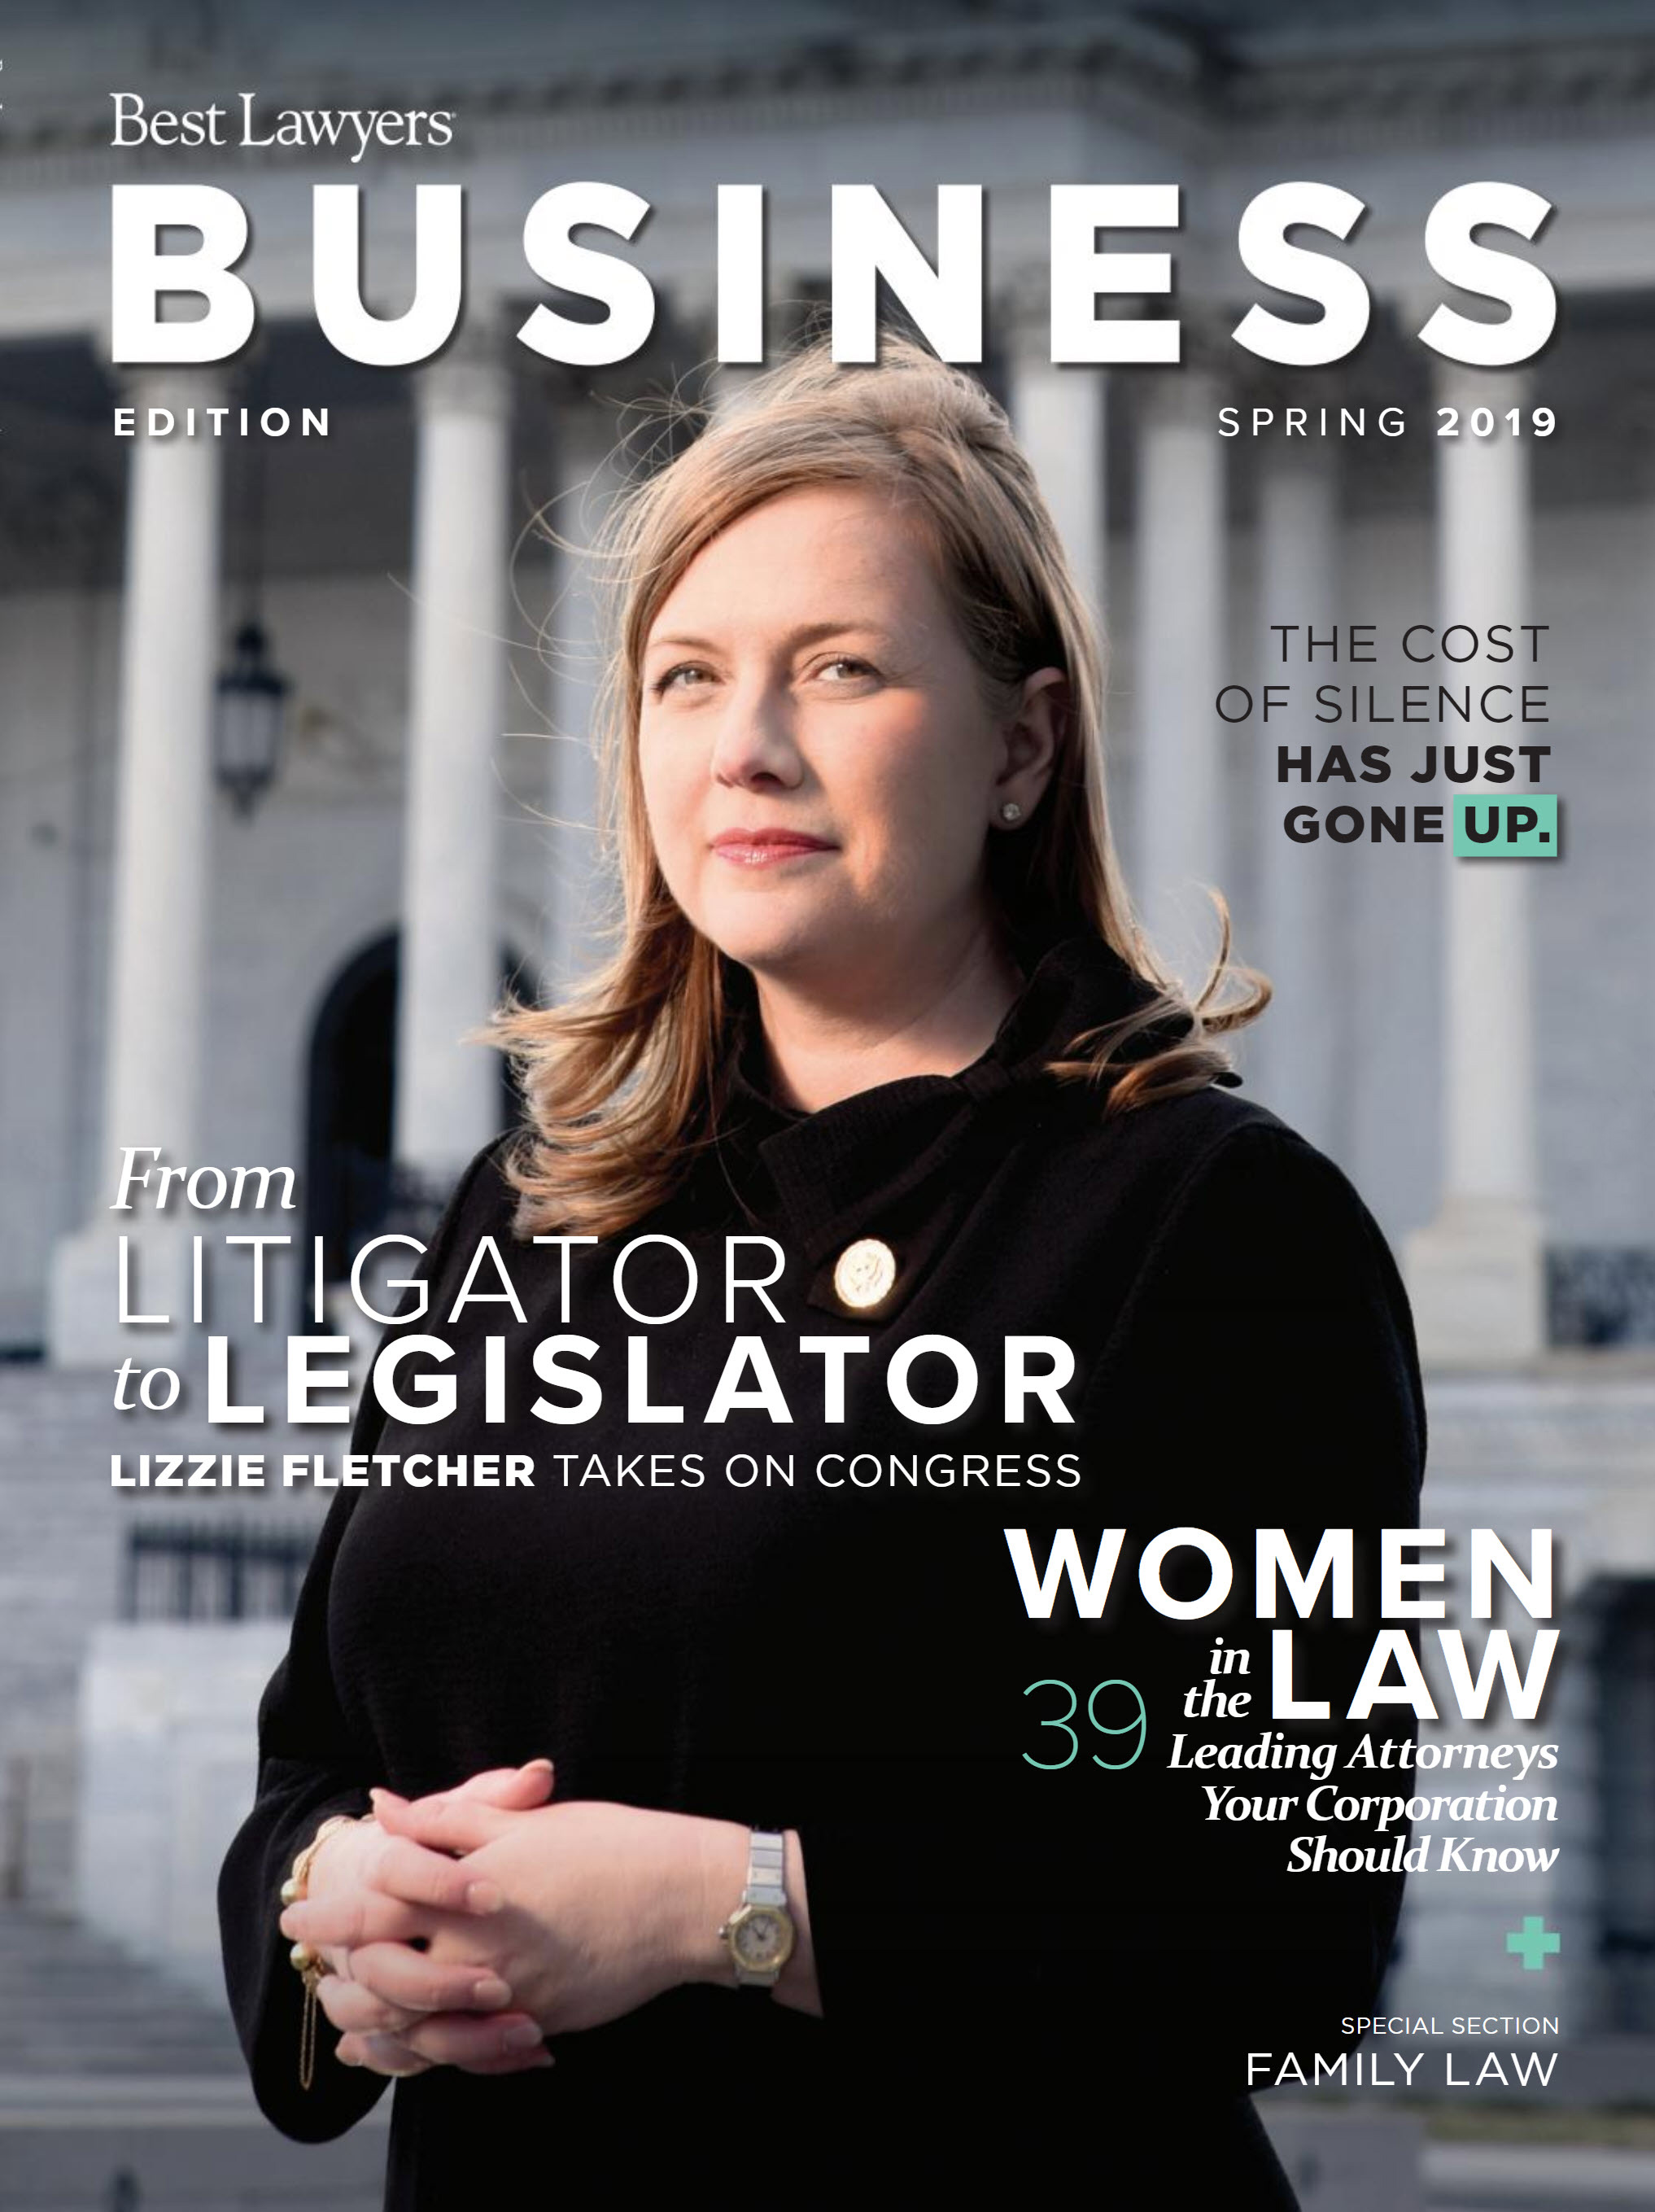 All About Lizzie 2012 former aza partner fletcher featured on cover of national